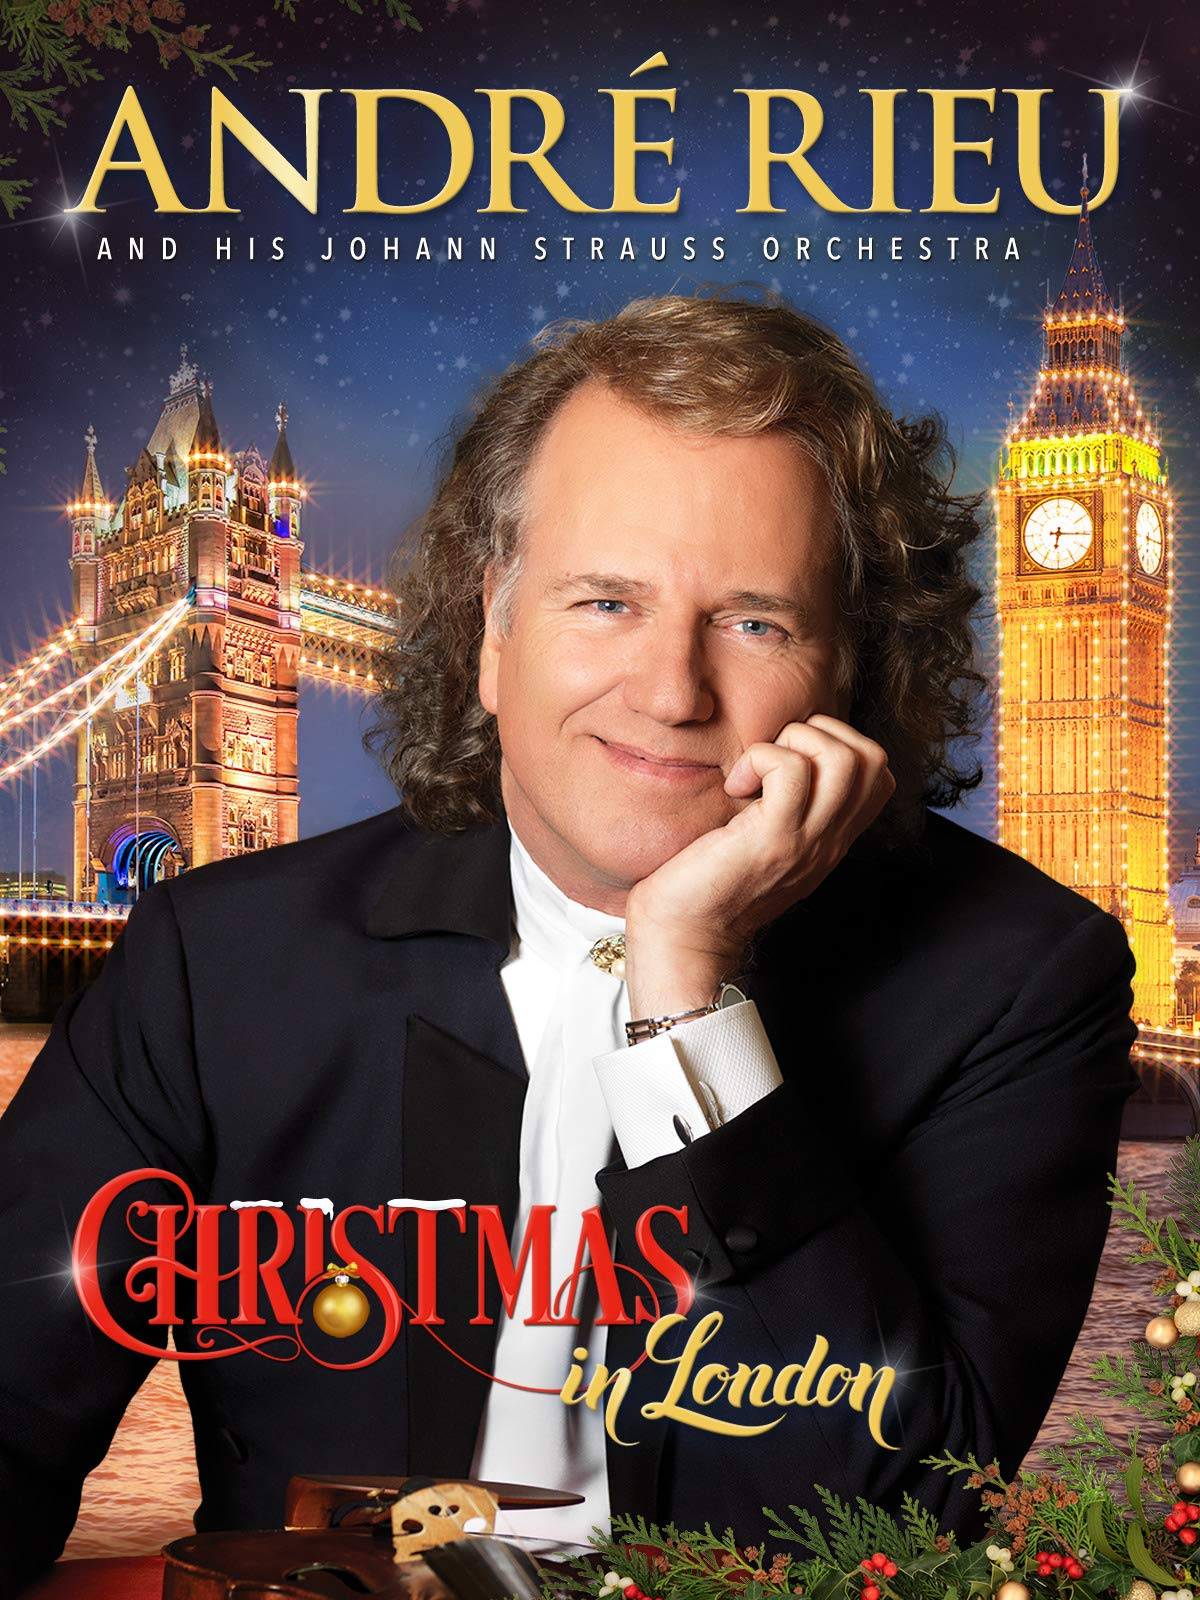 André Rieu And His Johann Strauss Orchestra - Christmas In London on Amazon Prime Instant Video UK